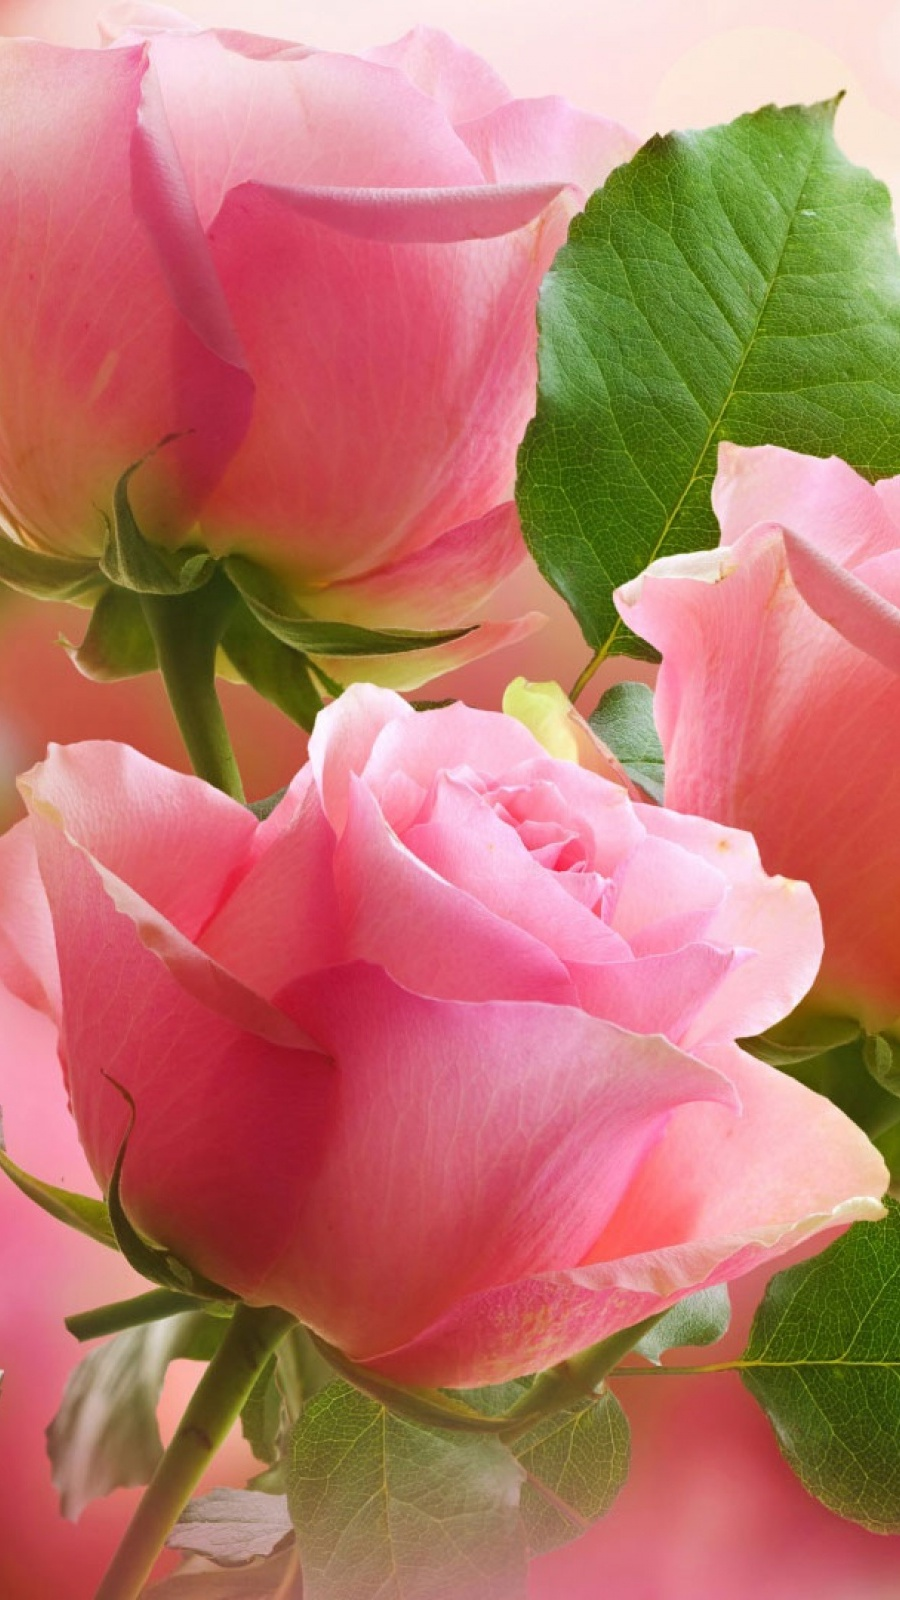 3 Light Pink Roses Mobile Wallpaper Mobiles Wall